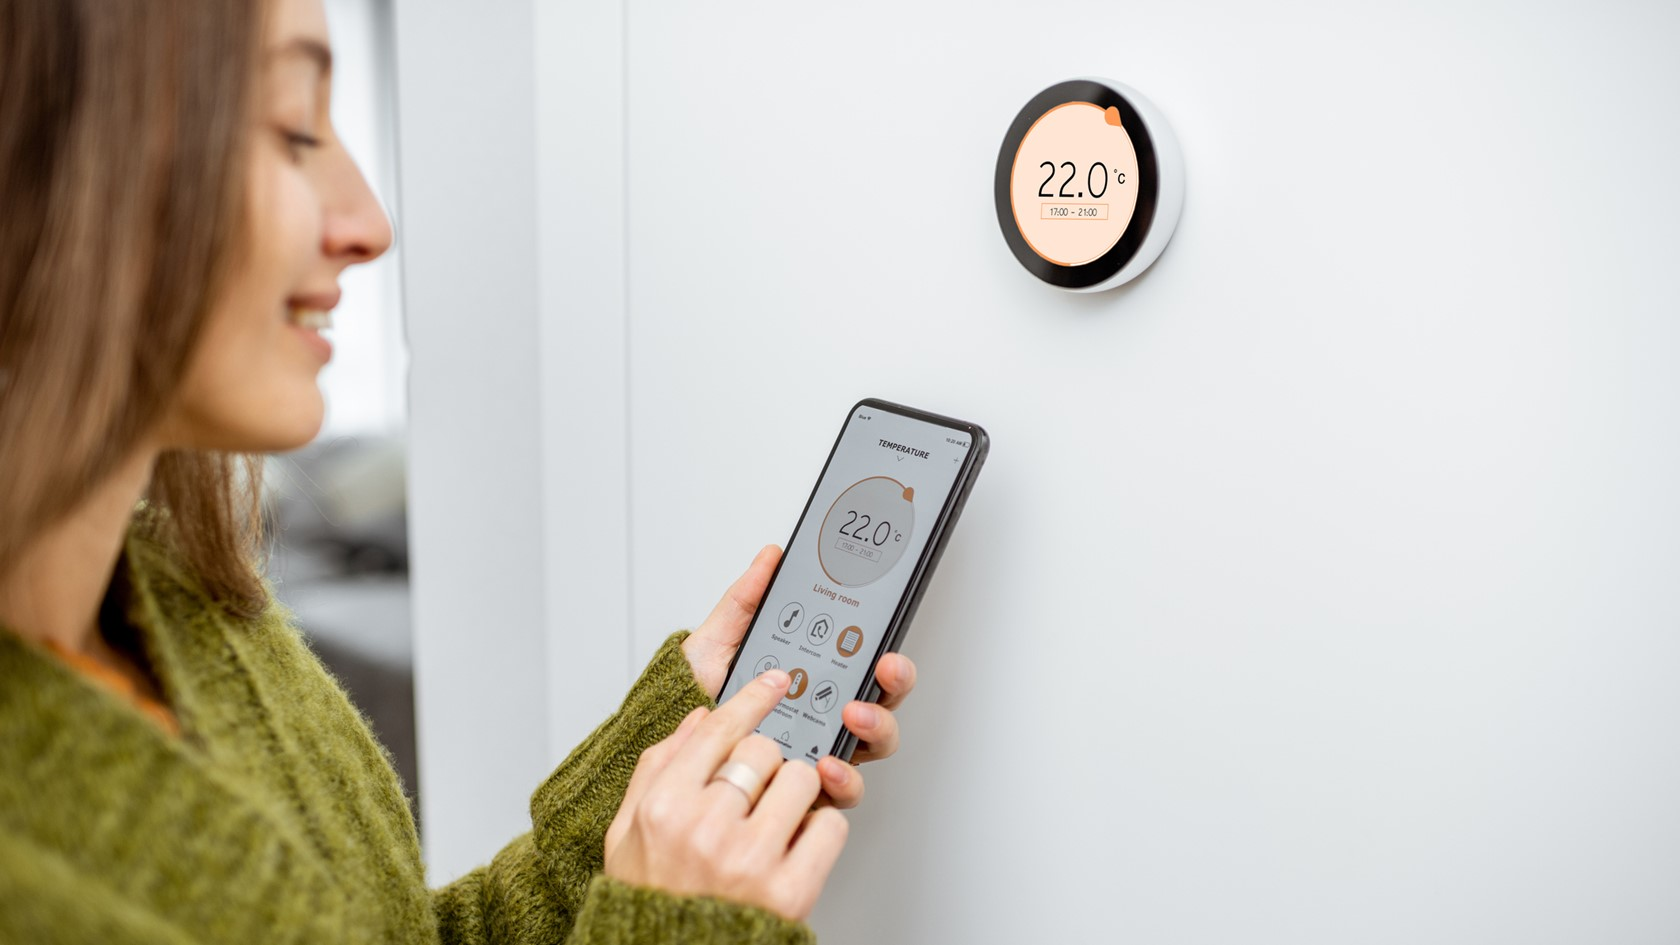 A young woman uses her phone to control her smart heating system.